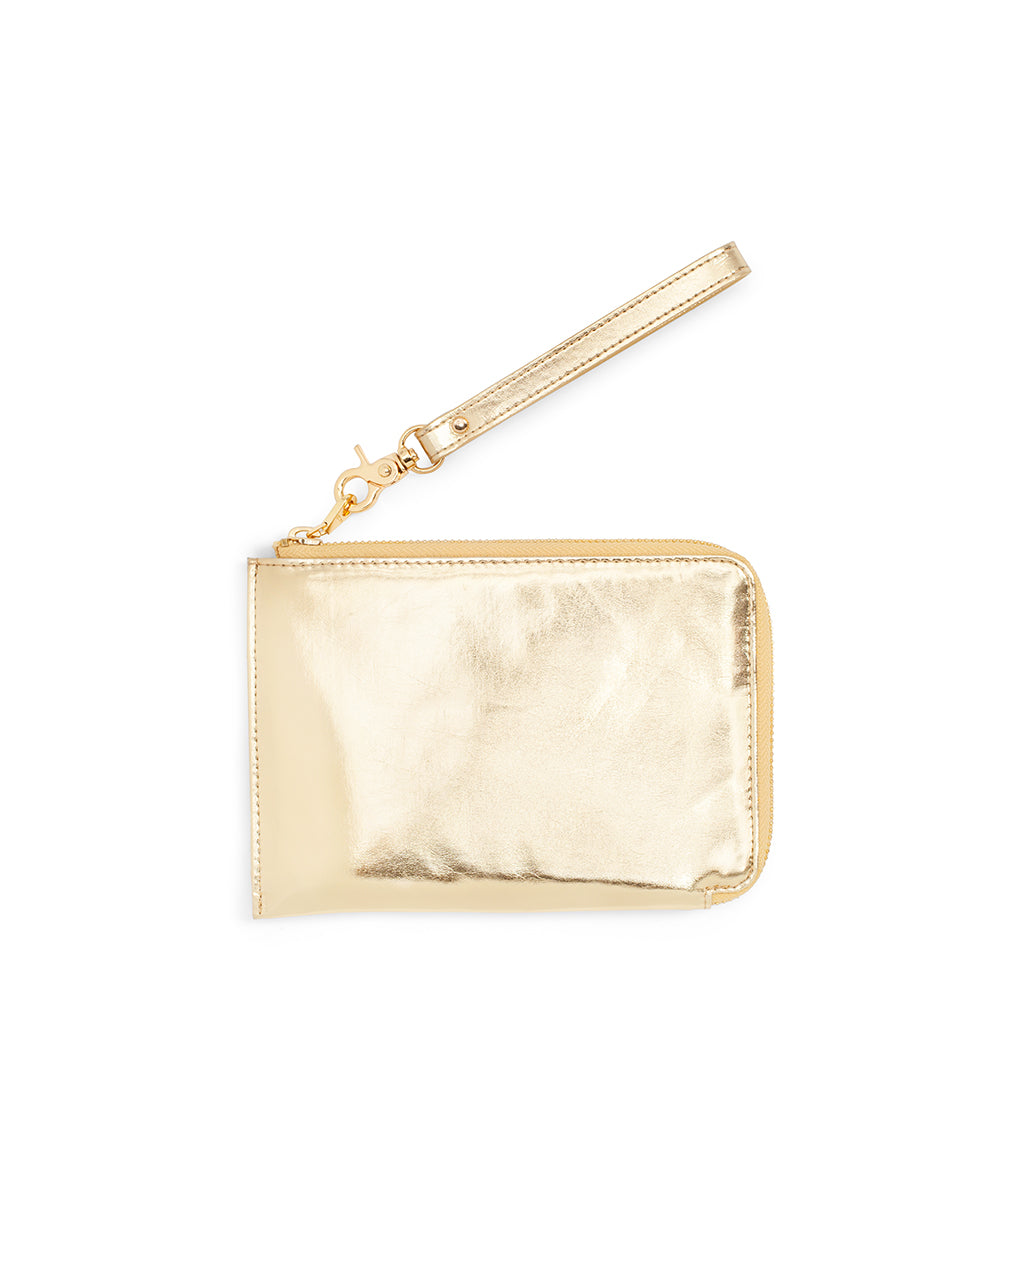 This Getaway Travel Clutch comes in a shiny metallic gold